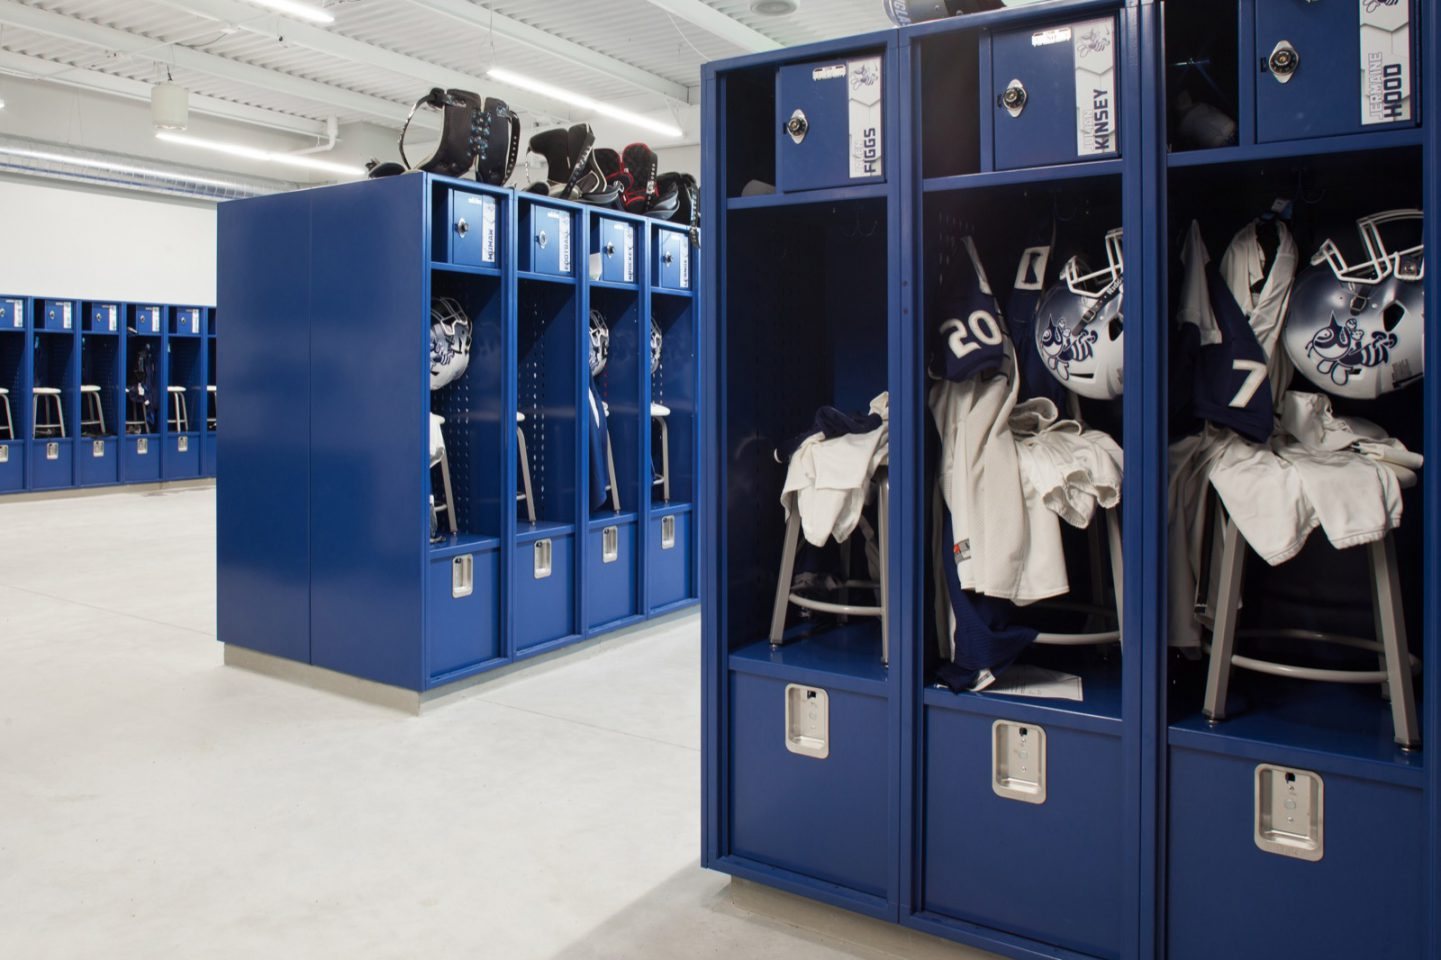 St. Ambrose, St. Vincent interior locker room